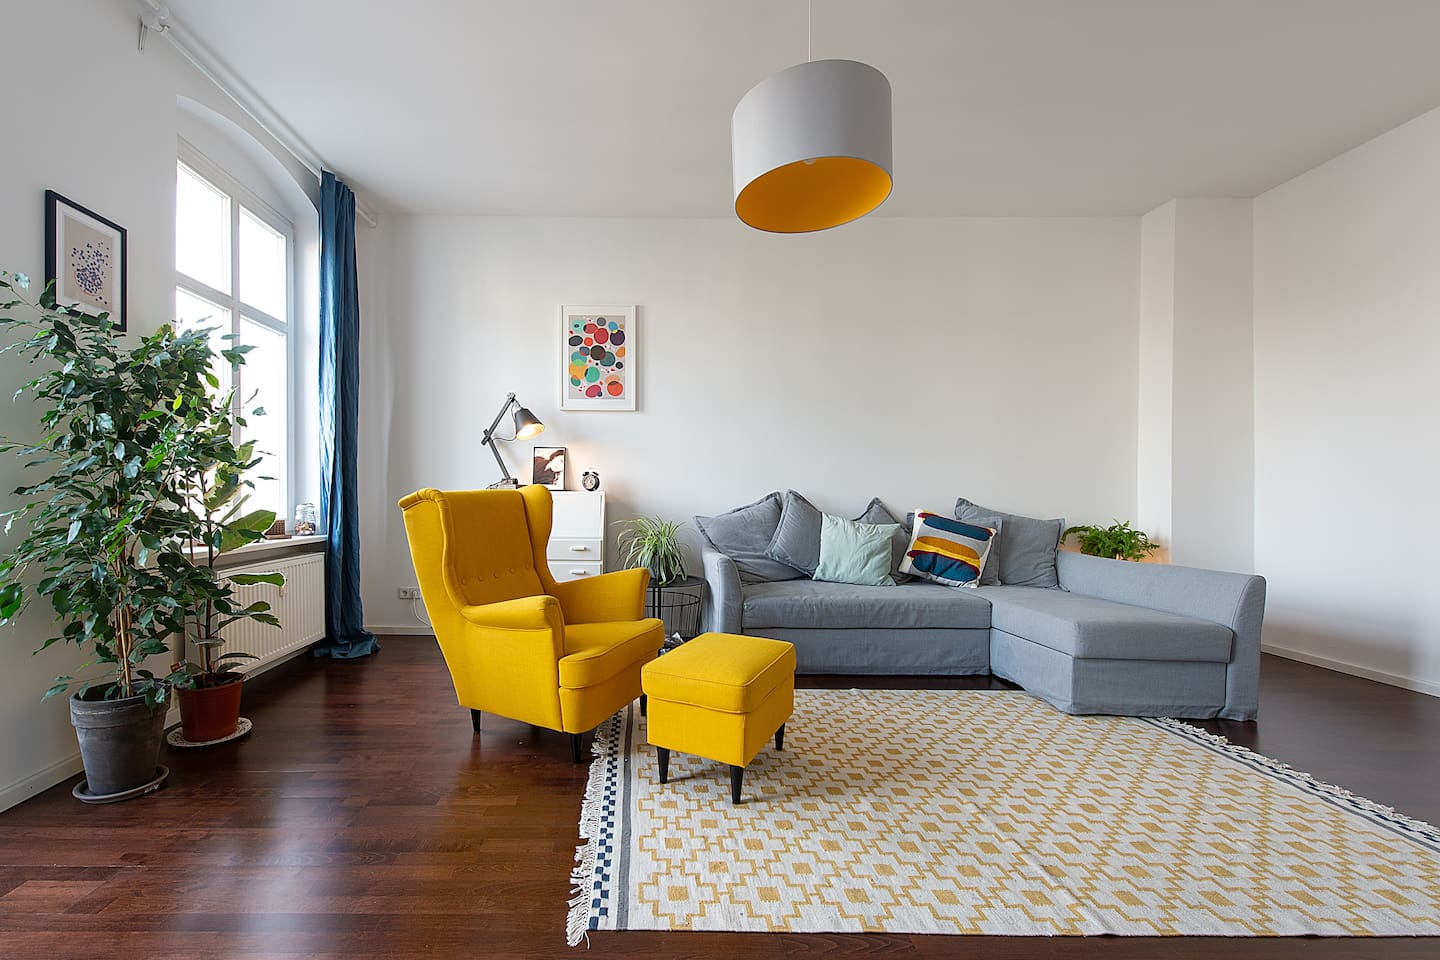 The bright, airy and spacious living room is the perfect place to relax after a long day exploring the city.